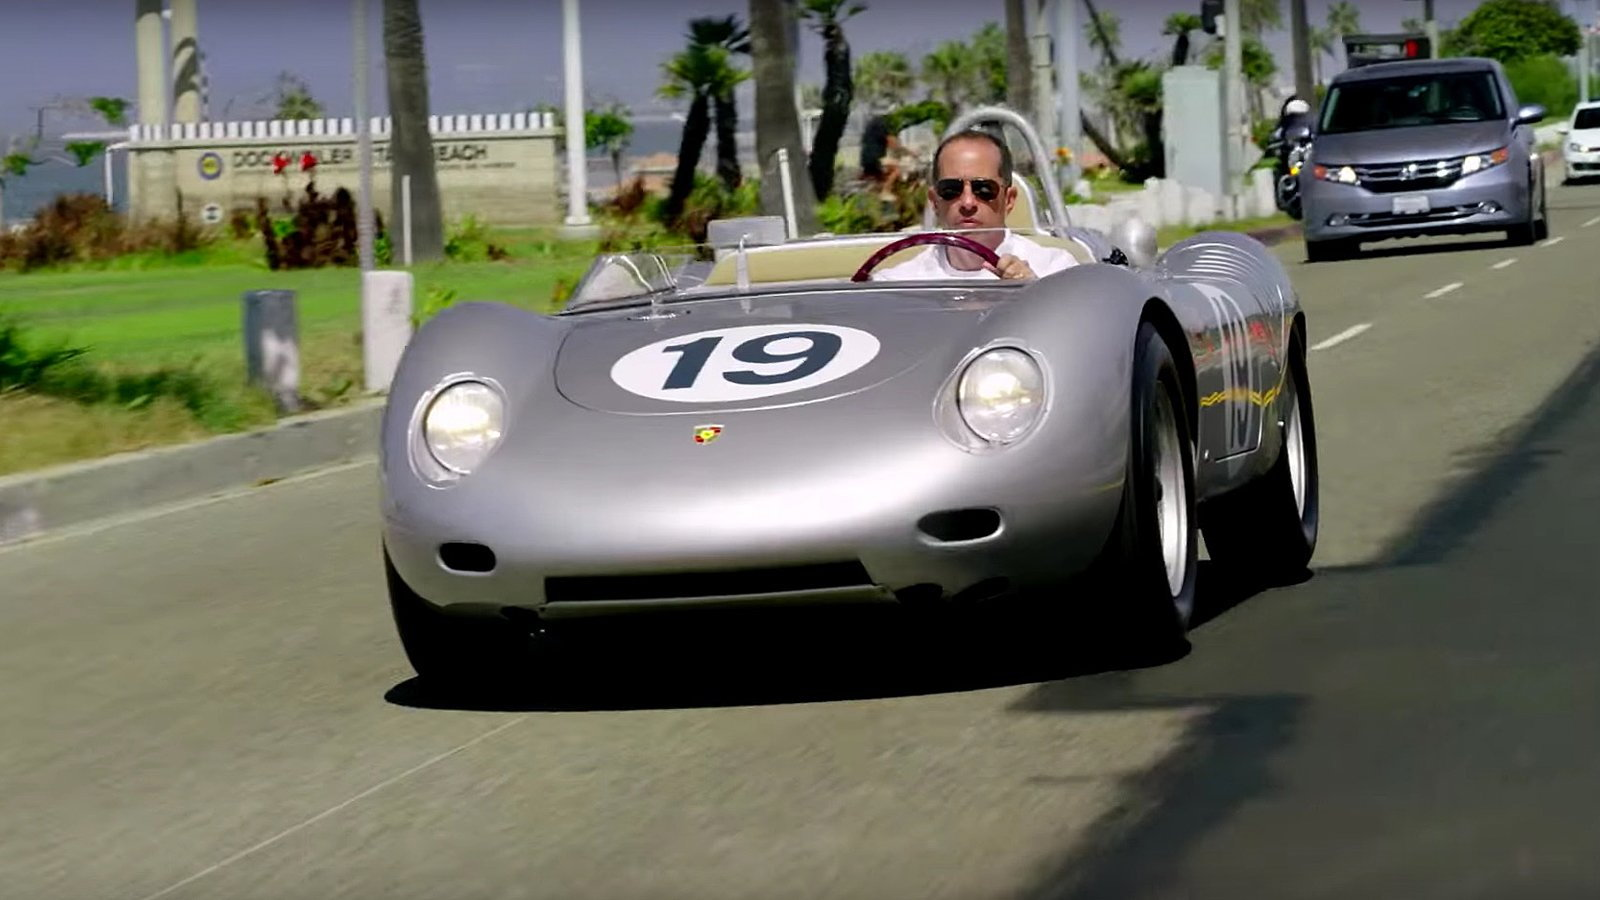 Do We Have Jerry Seinfeld to Thank For the 911R?